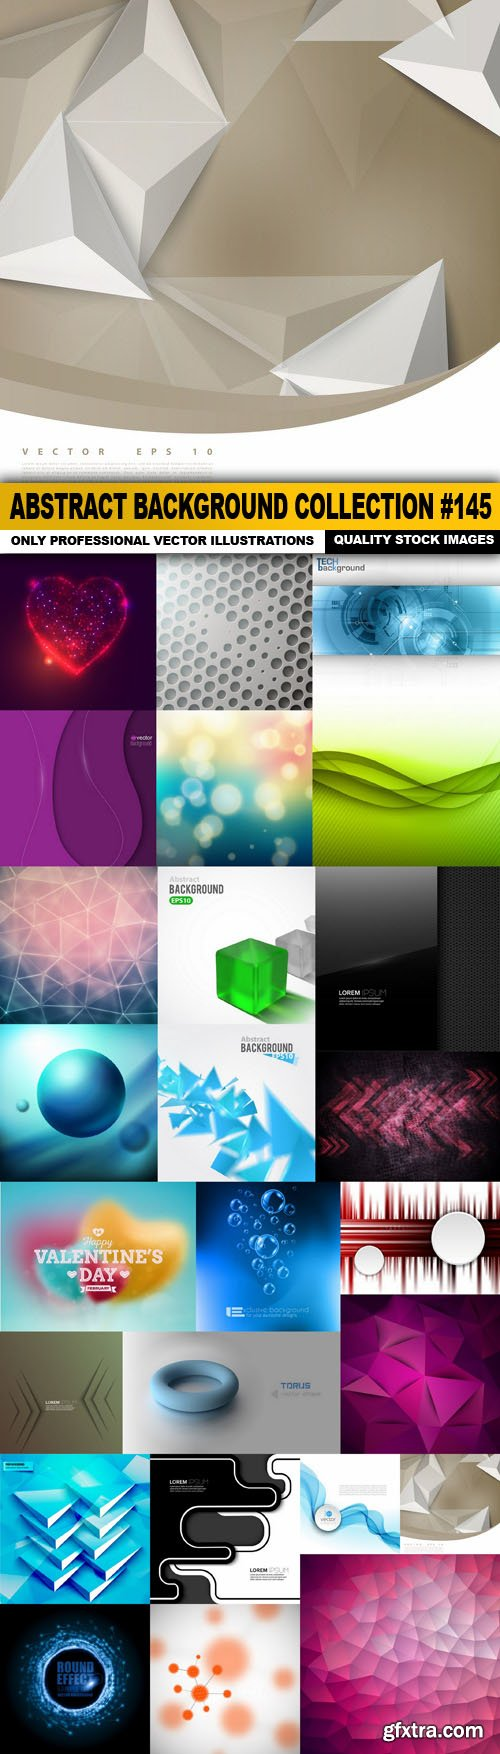 Abstract Background Collection #145 - 25 Vector